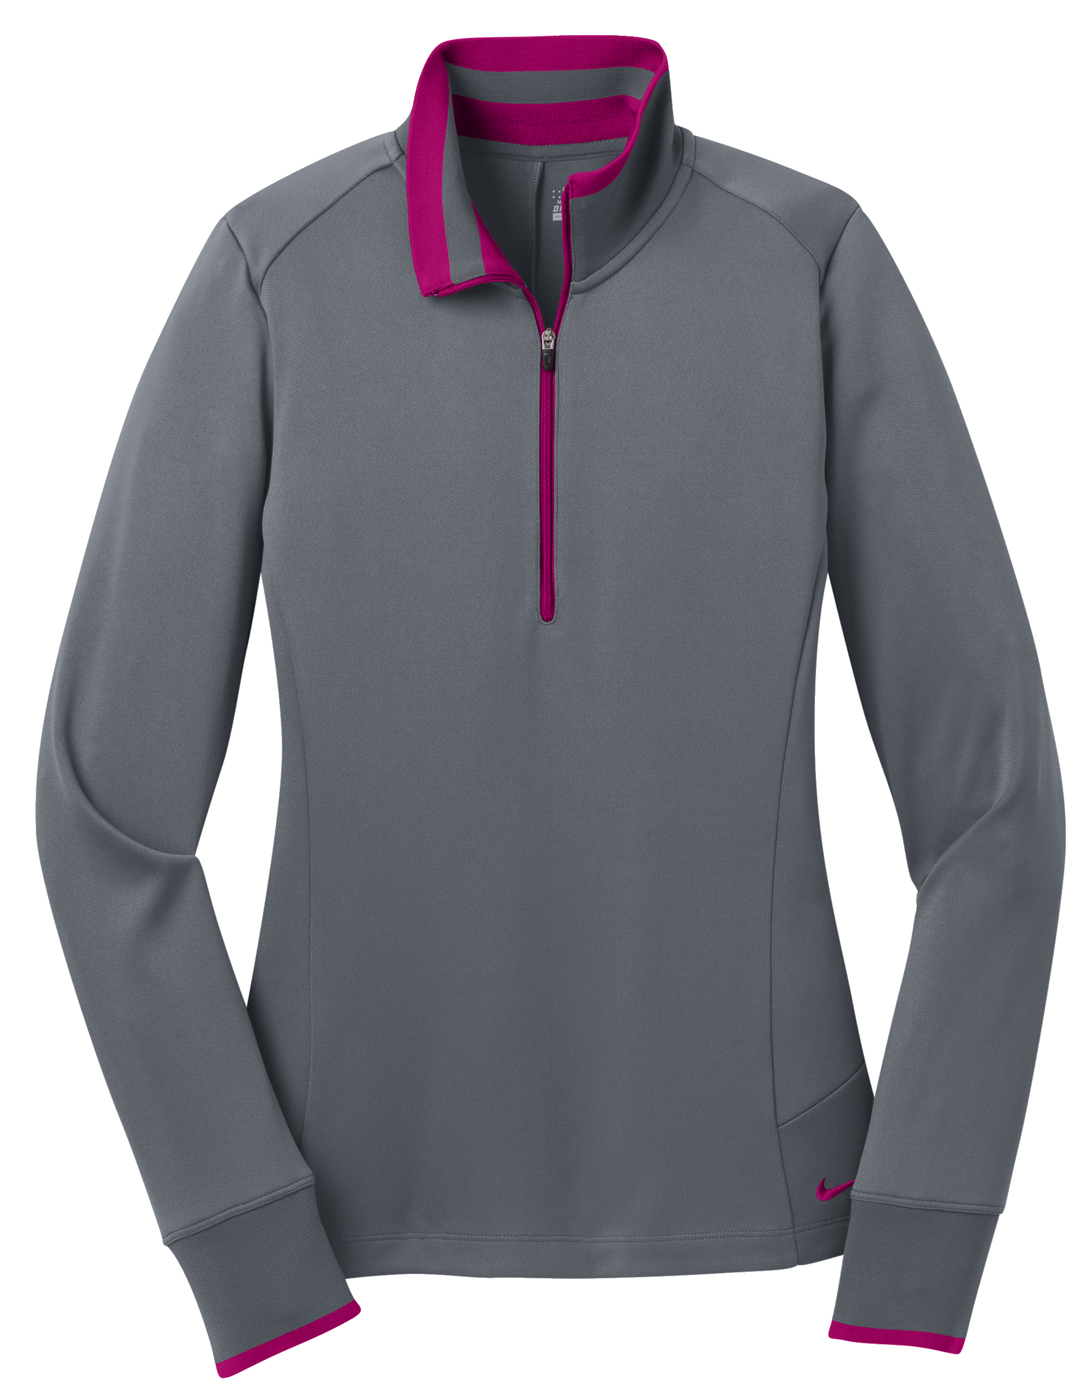 Nike golf dri fit 1 2 zip women 39 s long sleeve shirt for Women s dri fit golf shirts